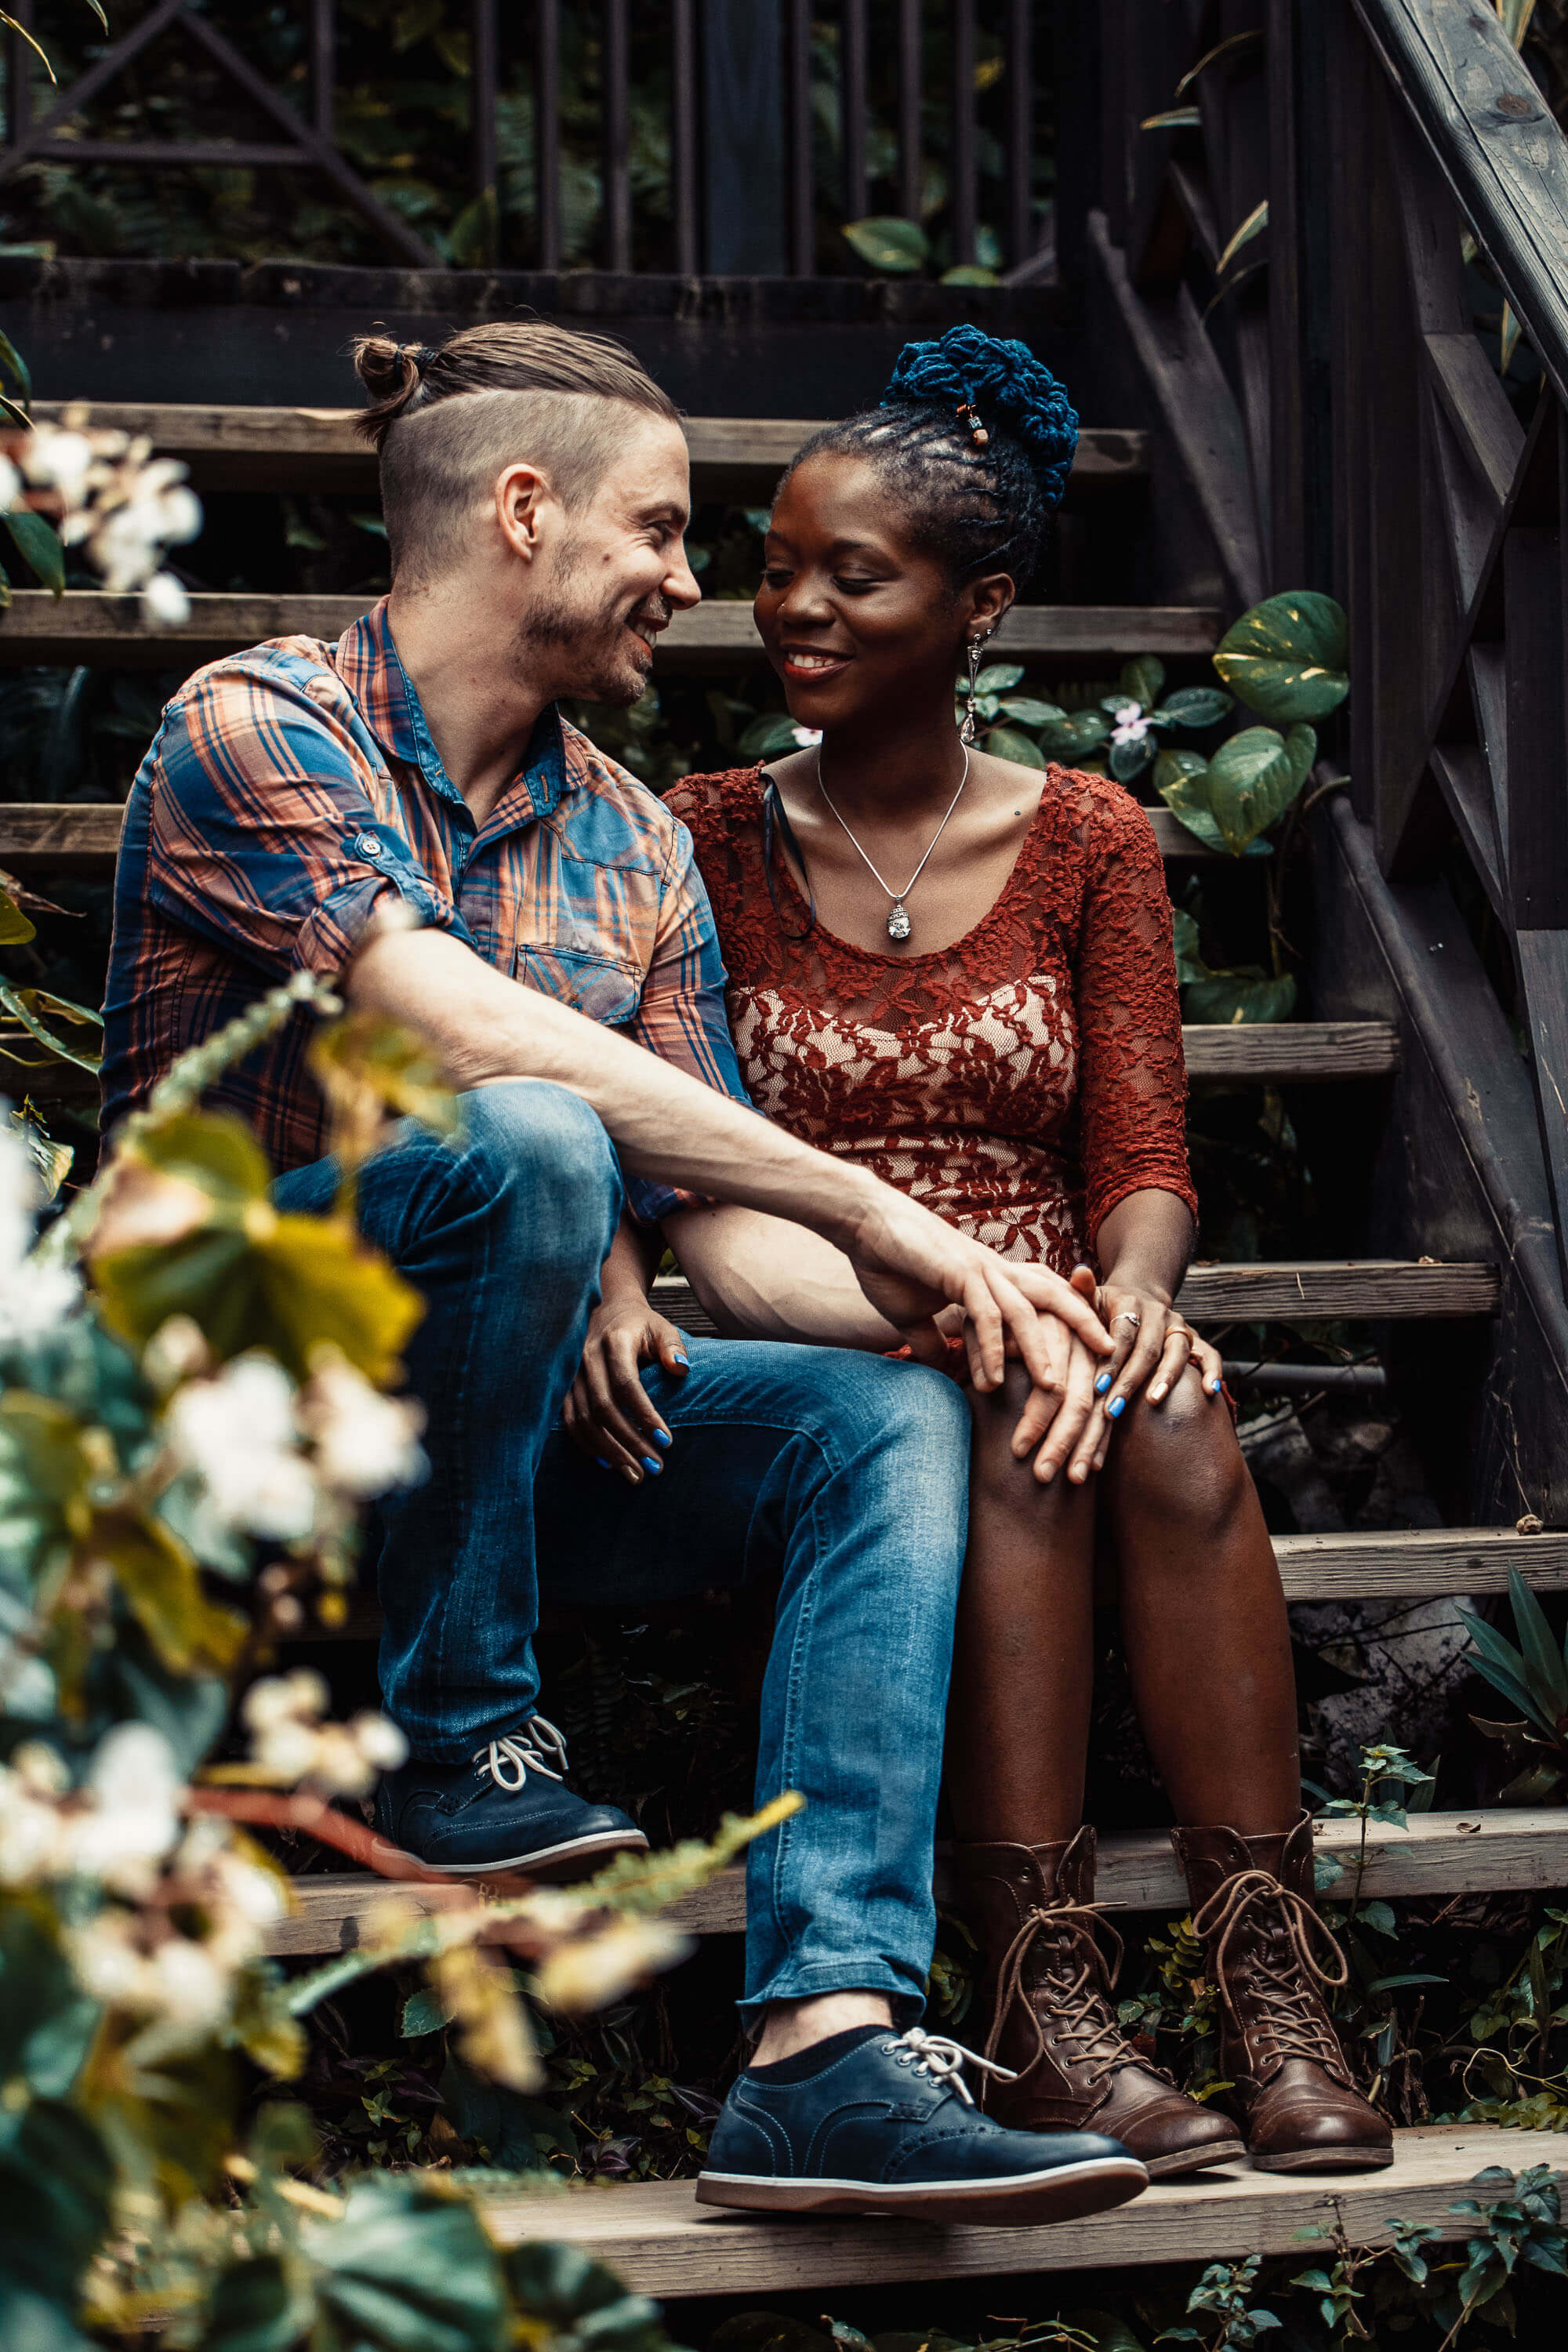 Couple sitting on wooden steps in nature